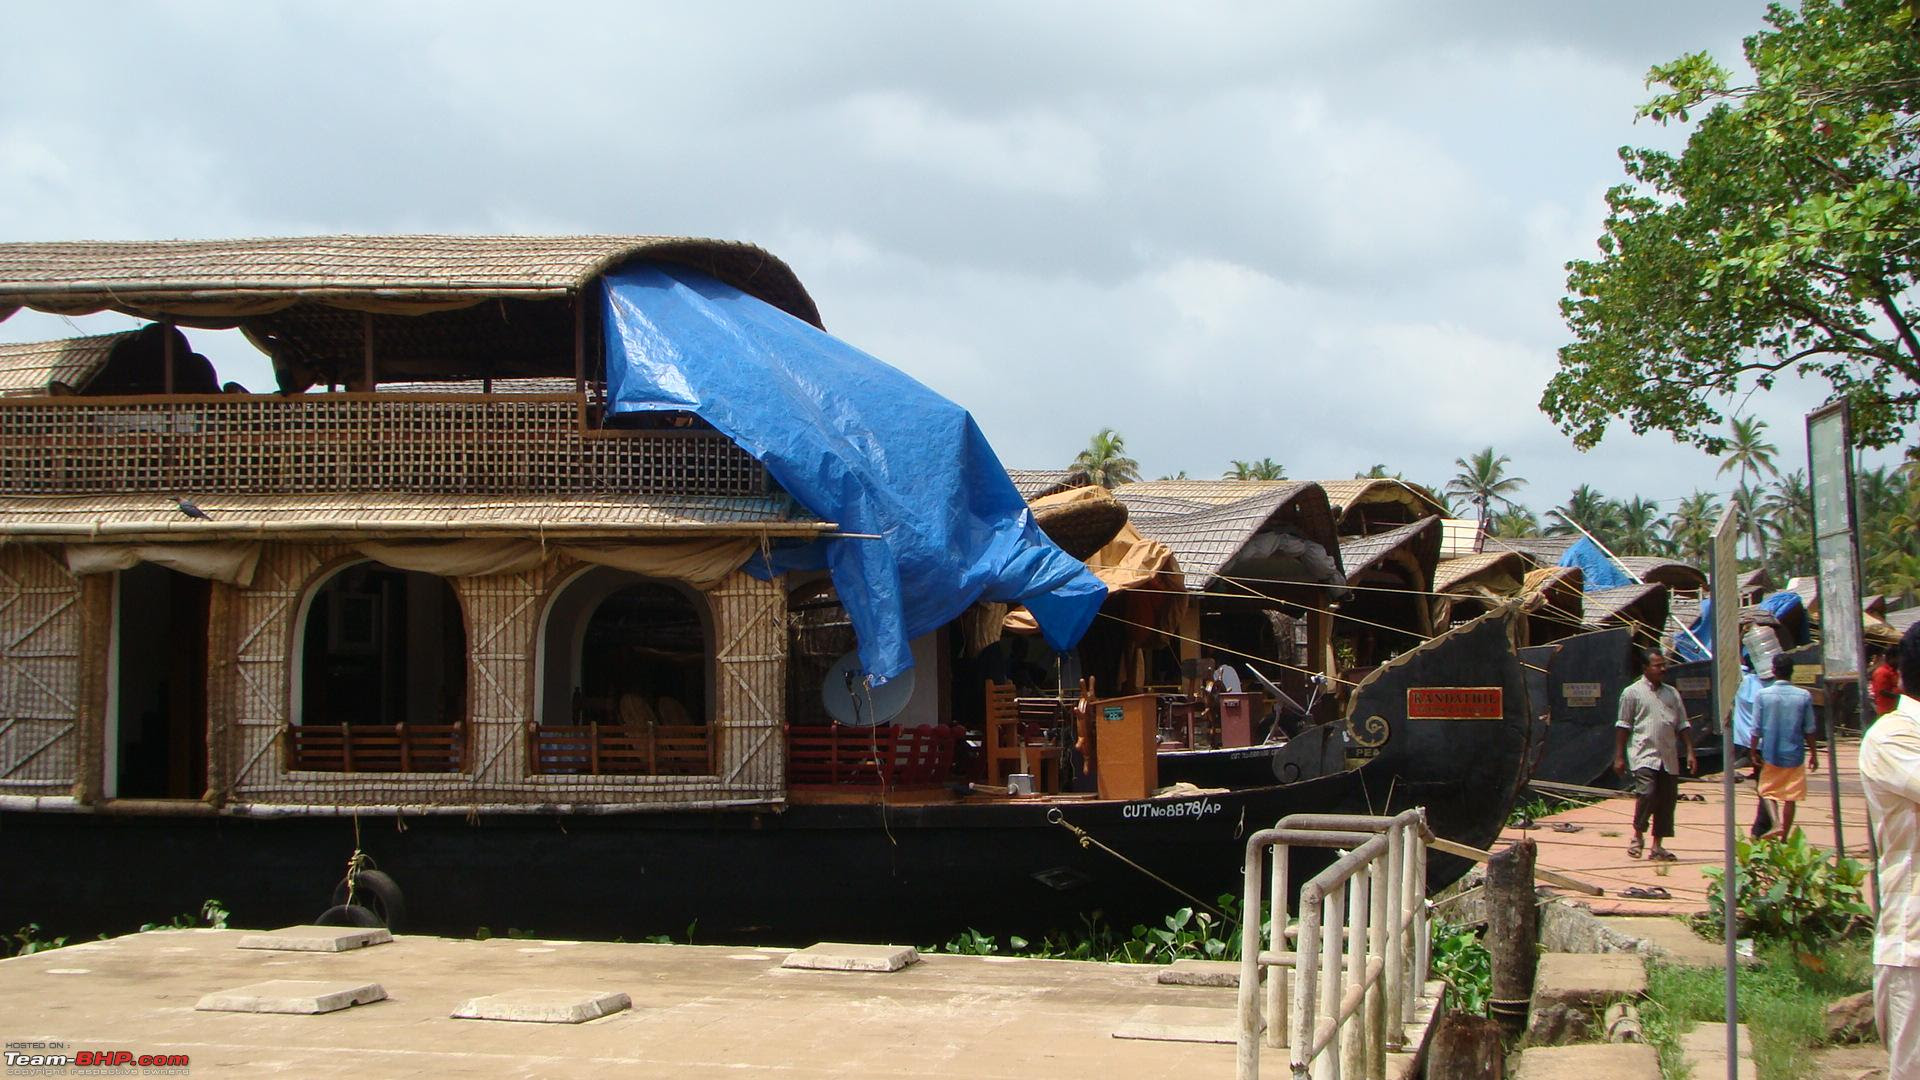 http://www.team-bhp.com/forum/attachments/travelogues/72168d1227164325-24-hour-cruise-houseboat-alappuzha-backwaters-dsc00966.jpg